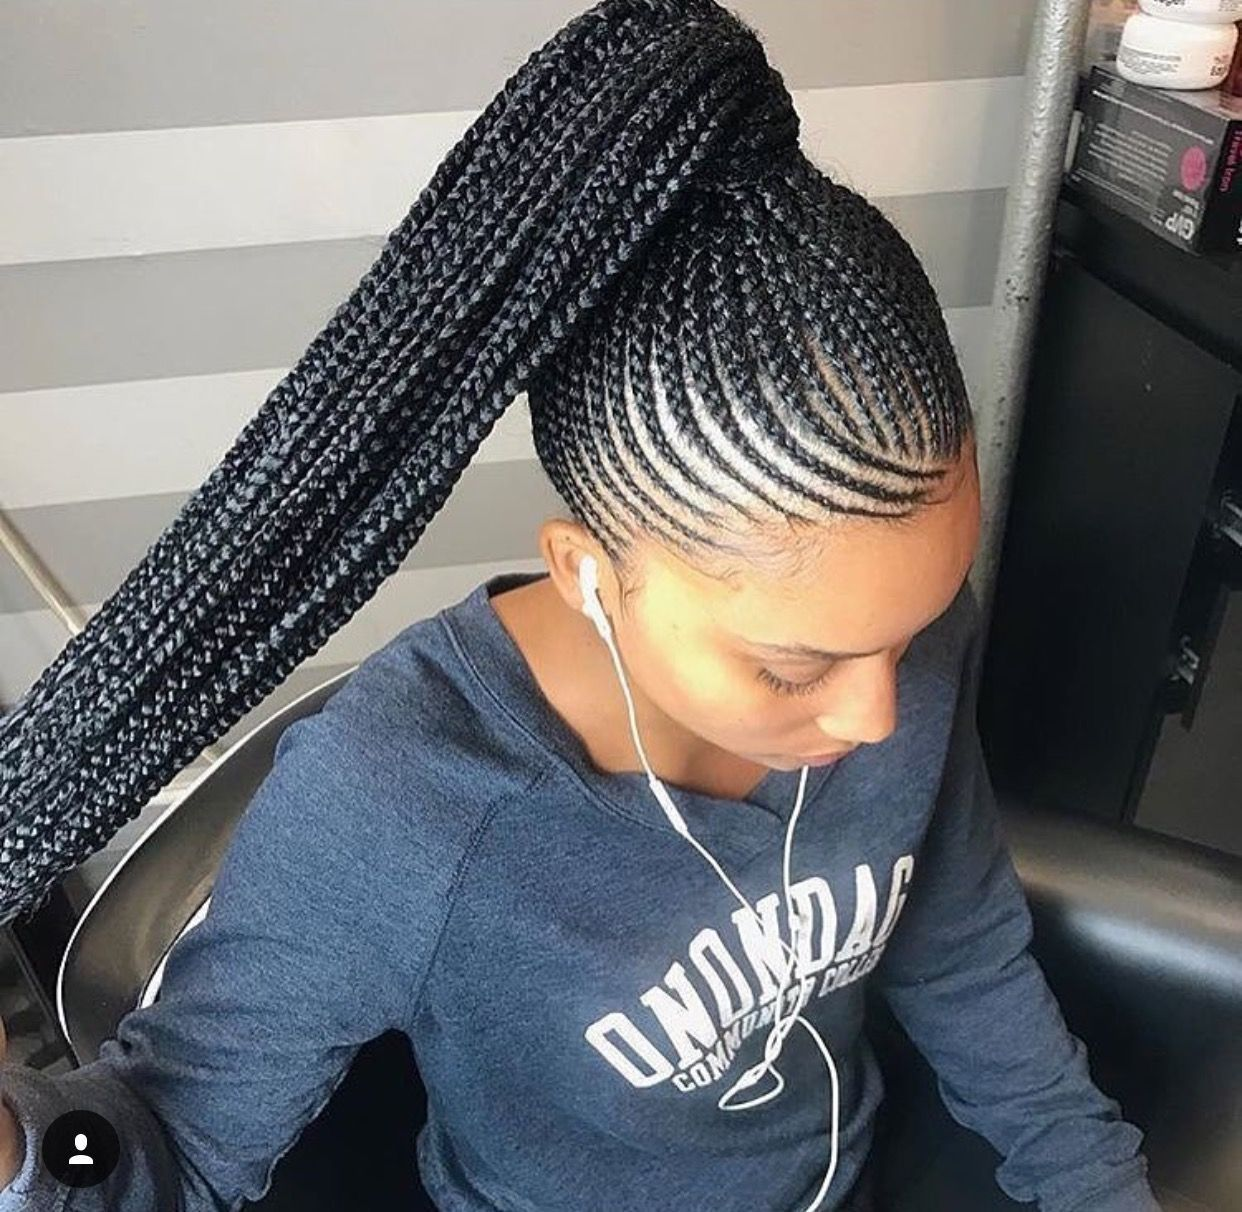 Pinterest Amea Blackgirlbraidedstyles Hairbraids Cornrows In A Ponytail Braided Ponytail Hairstyles